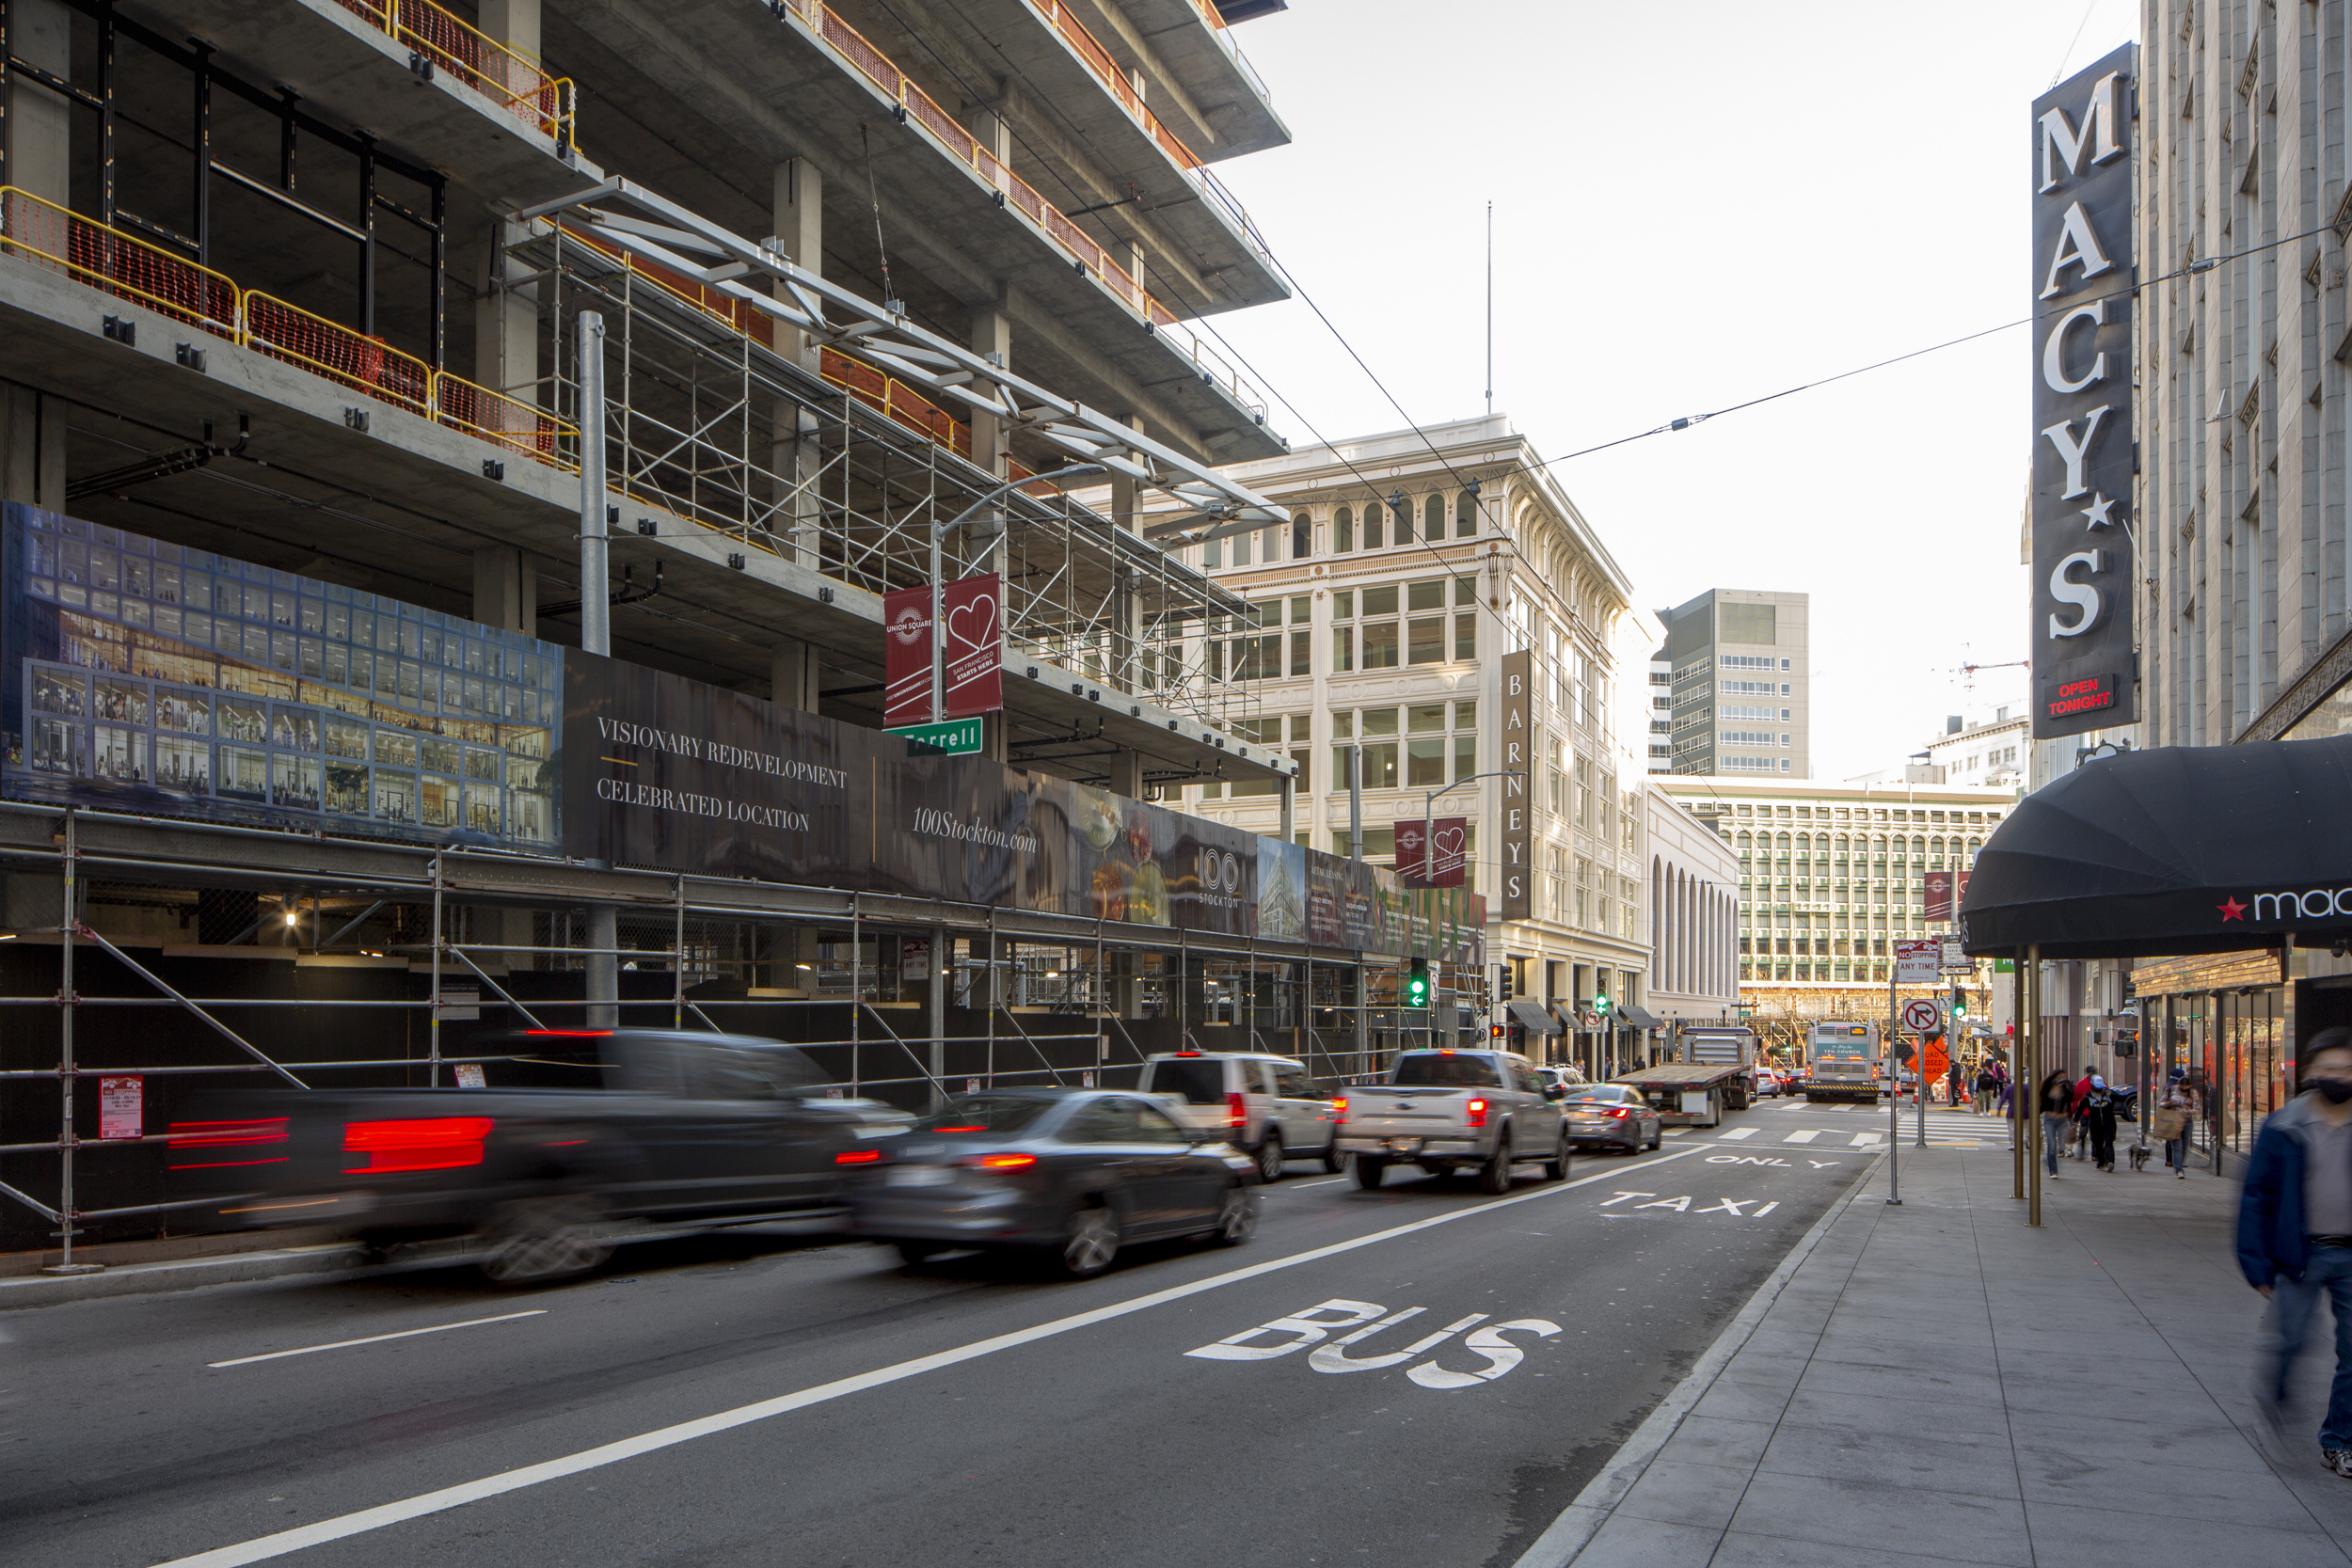 Construction update for 100 Stockton Street looking towards Market Street, image by Andrew Campbell Nelson